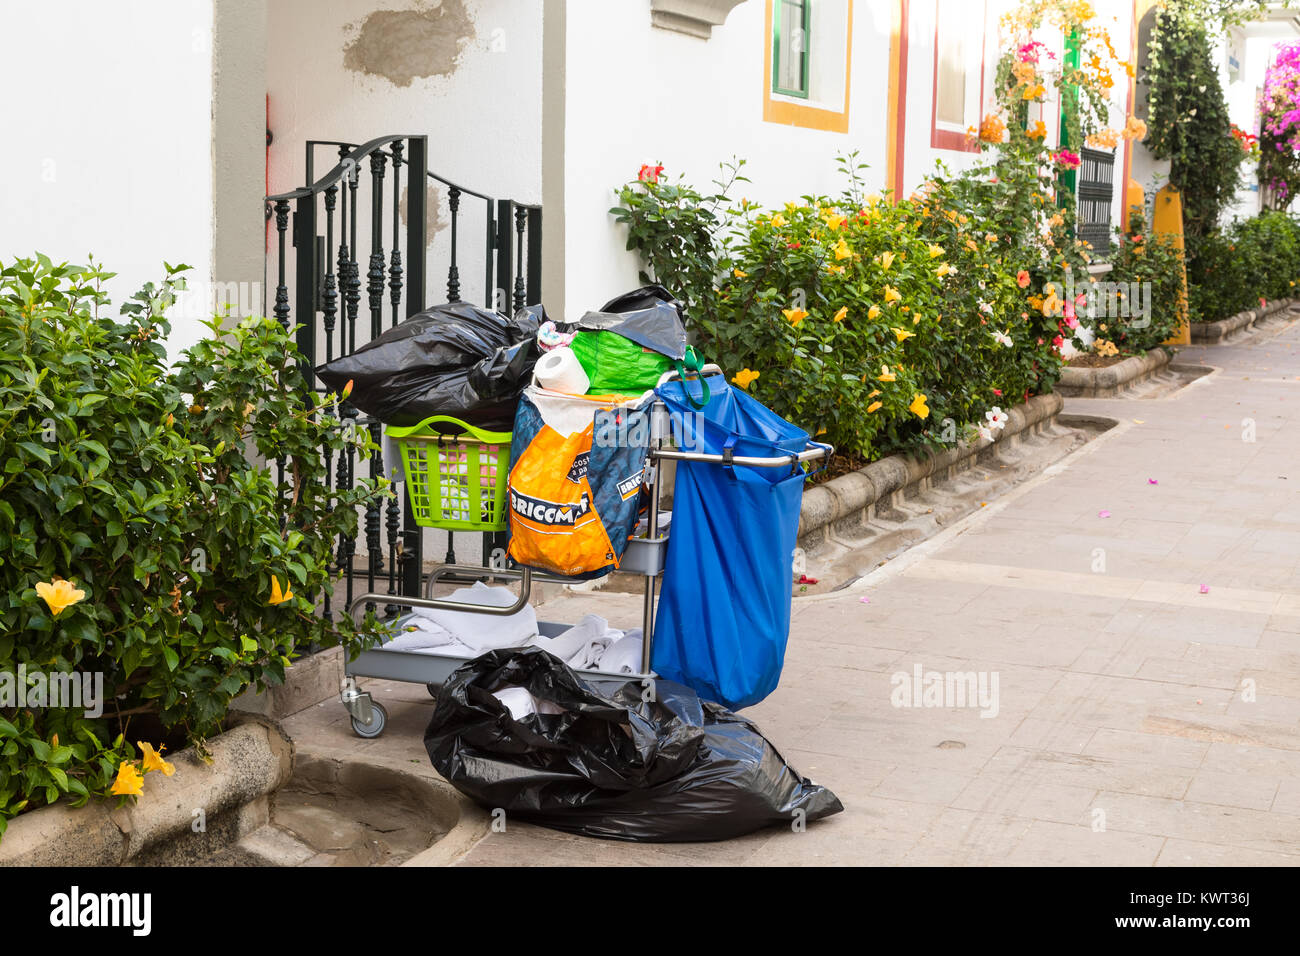 Puerto de Mogan, Gran Canaria in Spain - December 16, 2017: Cleaning trolley standing outside a gate in the street Stock Photo